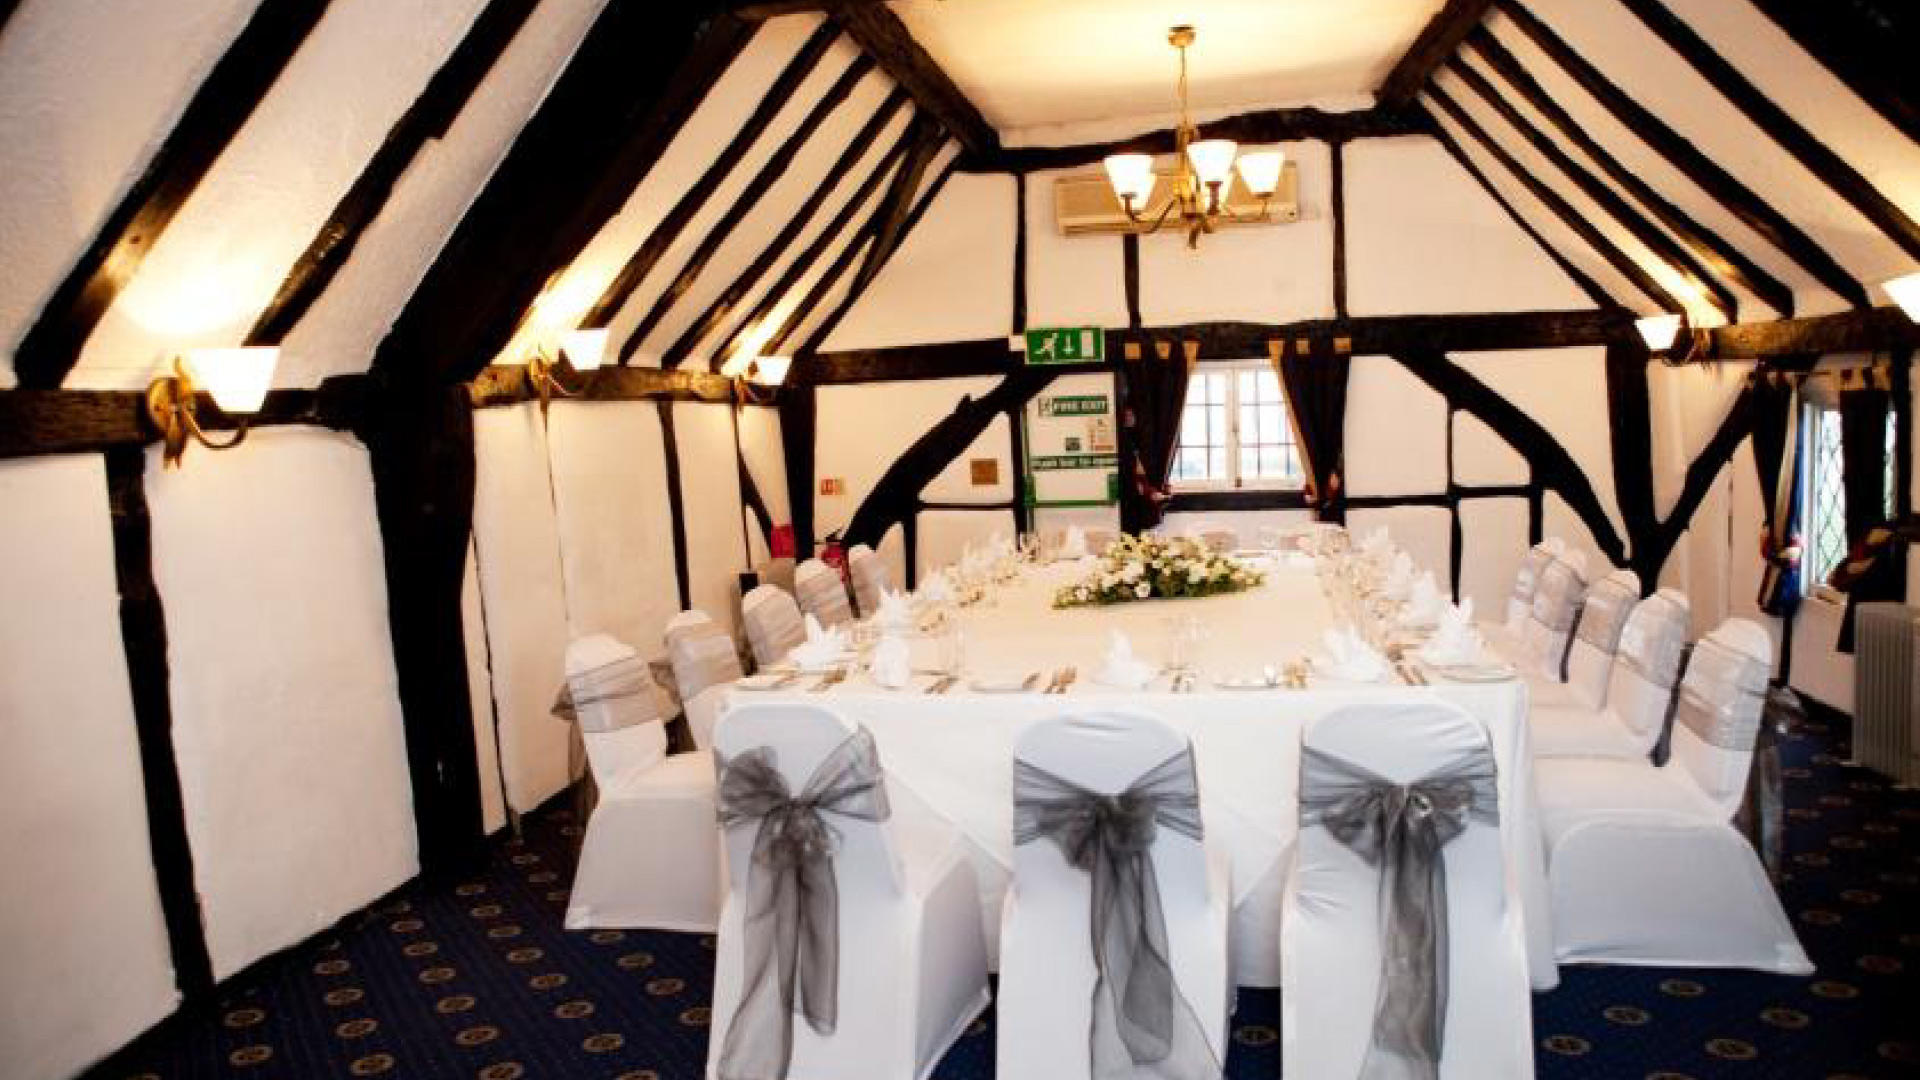 Wedding at The Barn Hotel, Ruislip